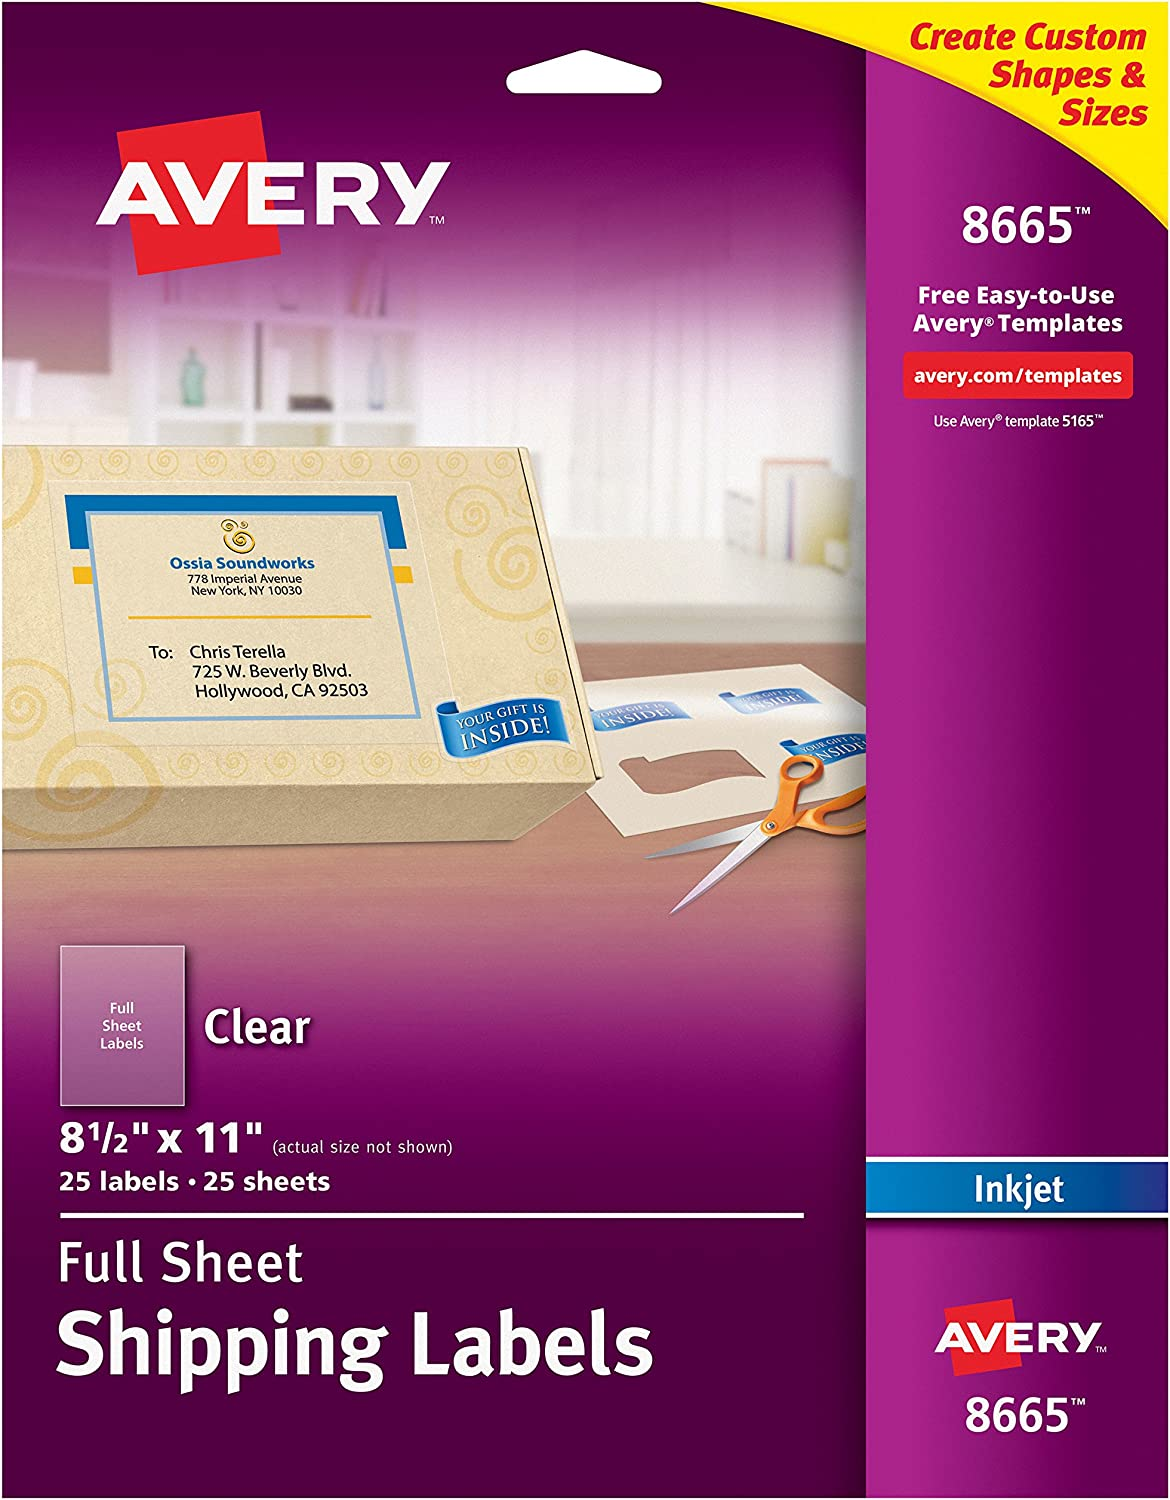 "Avery Matte Frosted Clear Full Sheet Labels for Inkjet Printers, 8.5"" x 11"", 25 Labels (8665)"